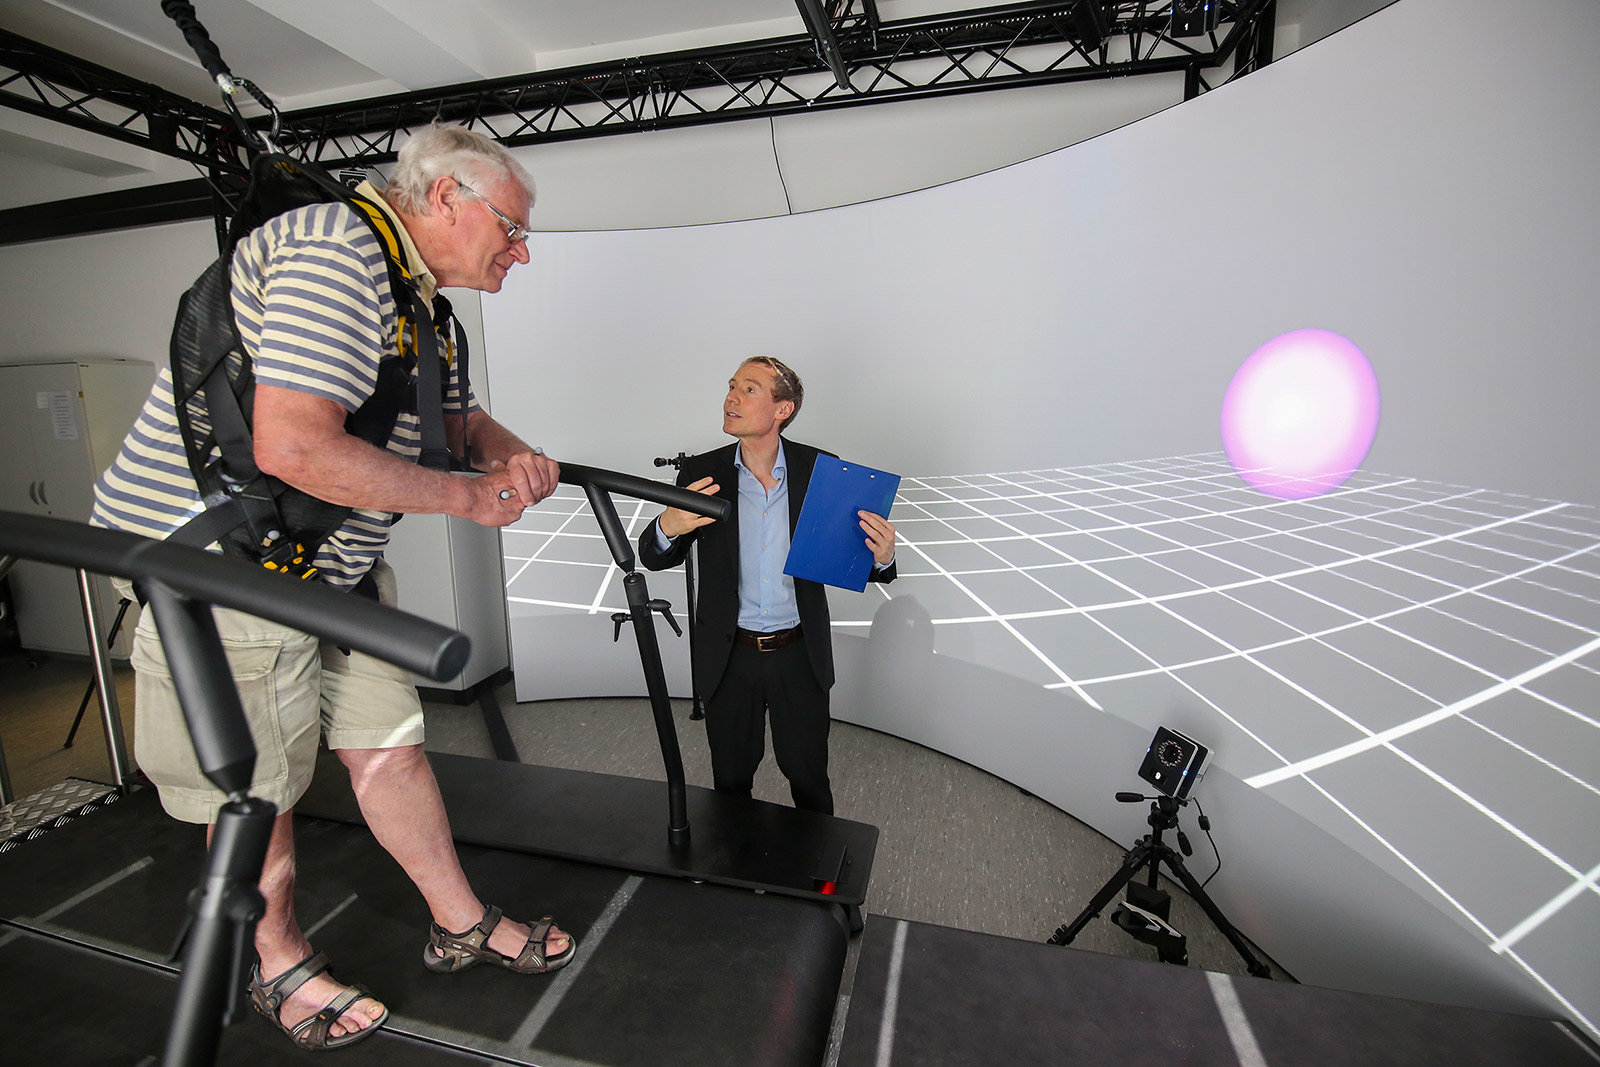 A test subject with a lower leg prosthesis is placed on a virtual suspension bridge.